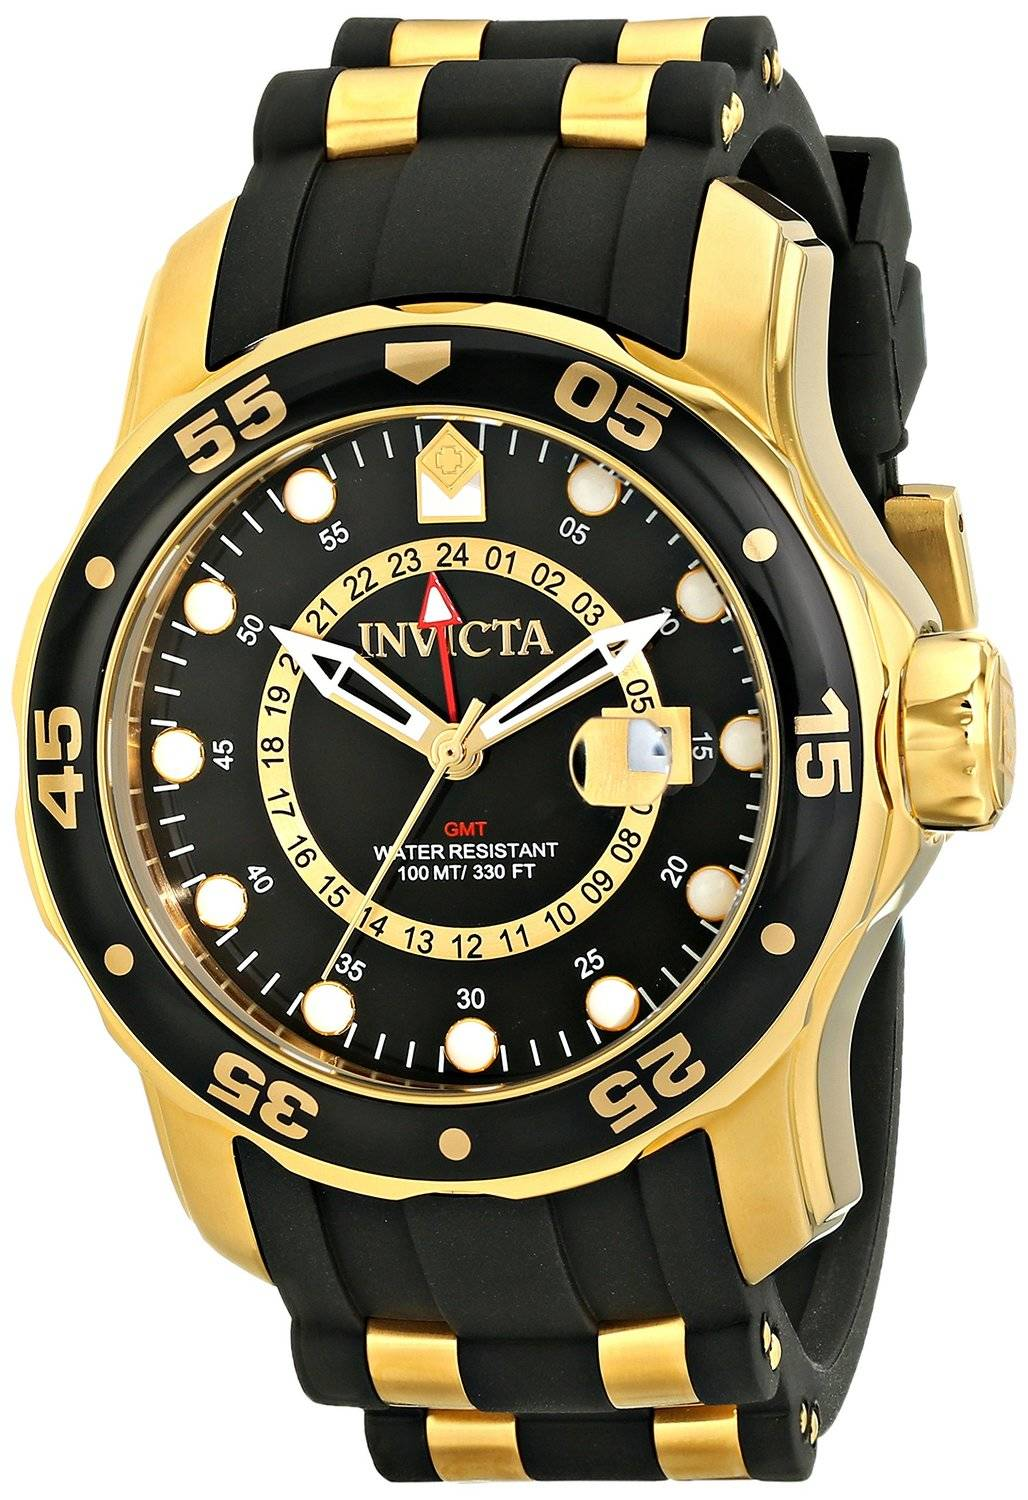 Invicta 6991 review